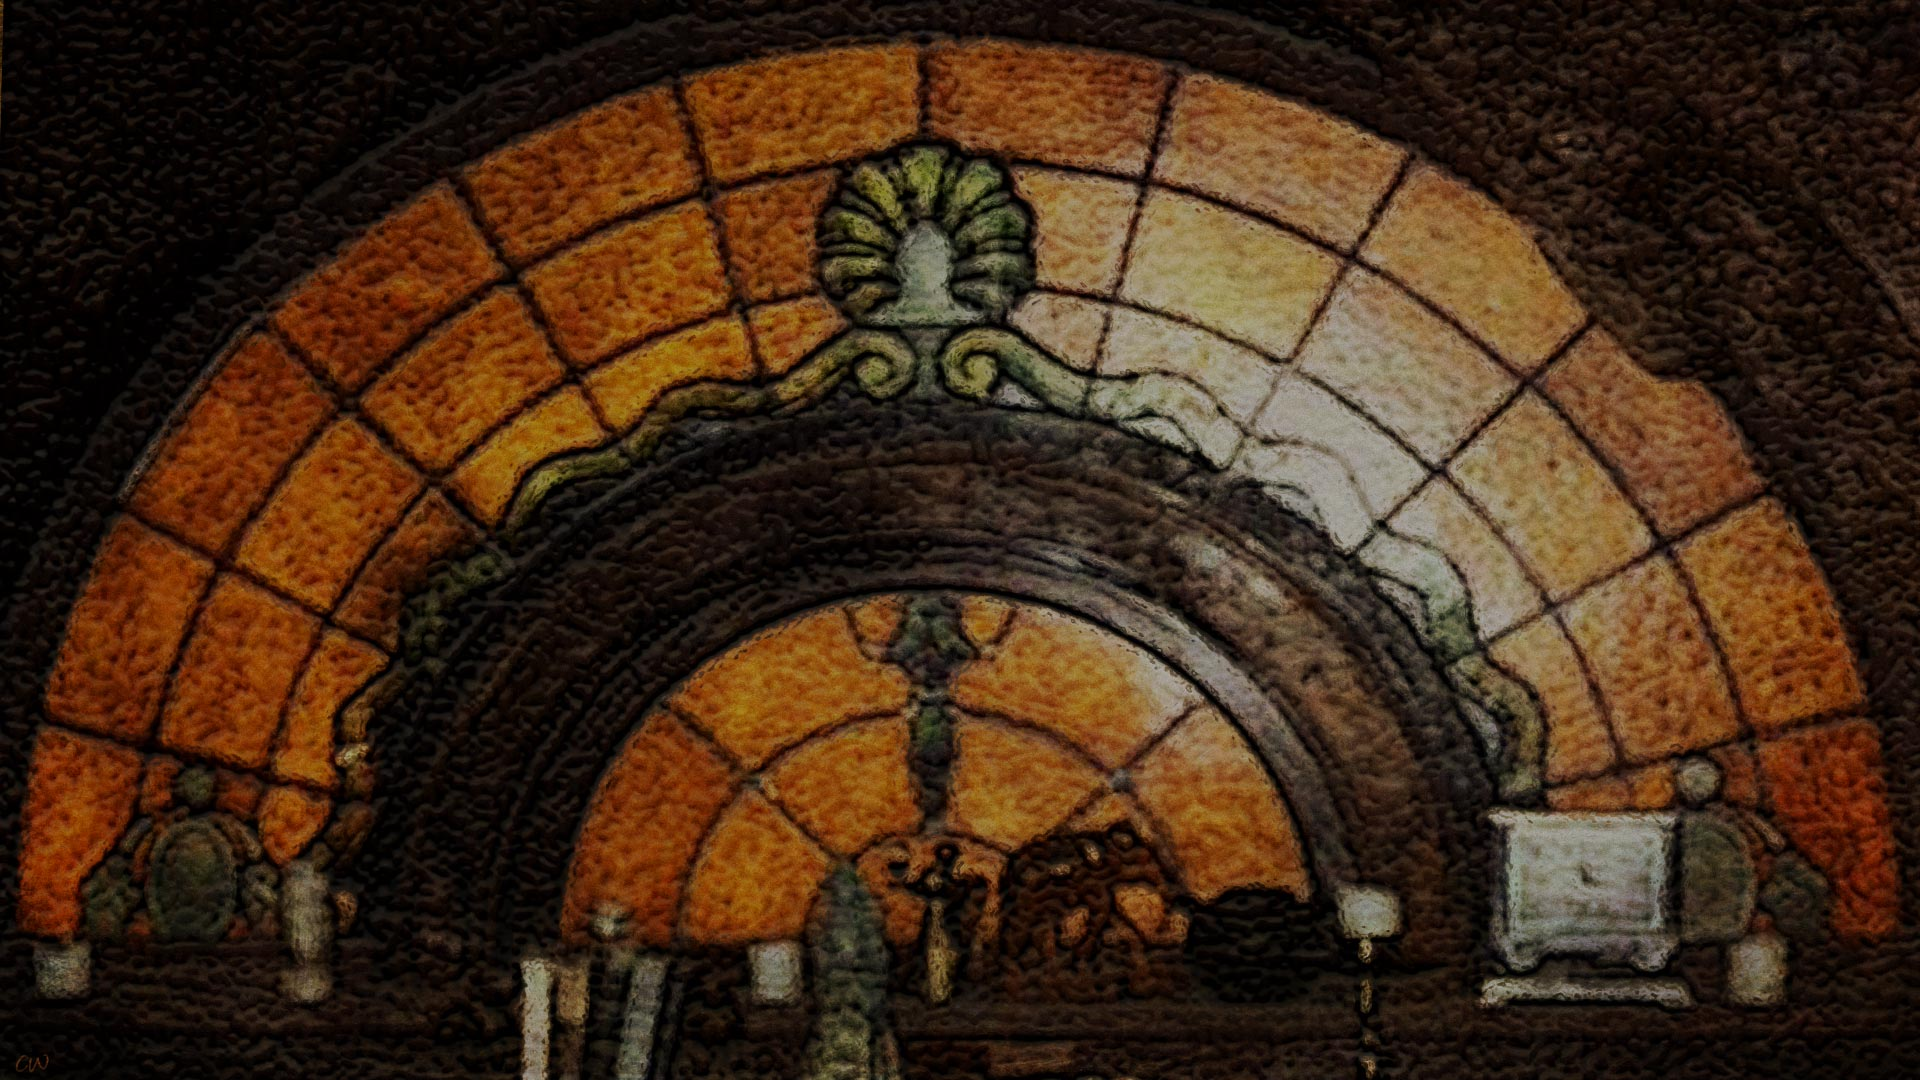 Vincent's stained glass window close up